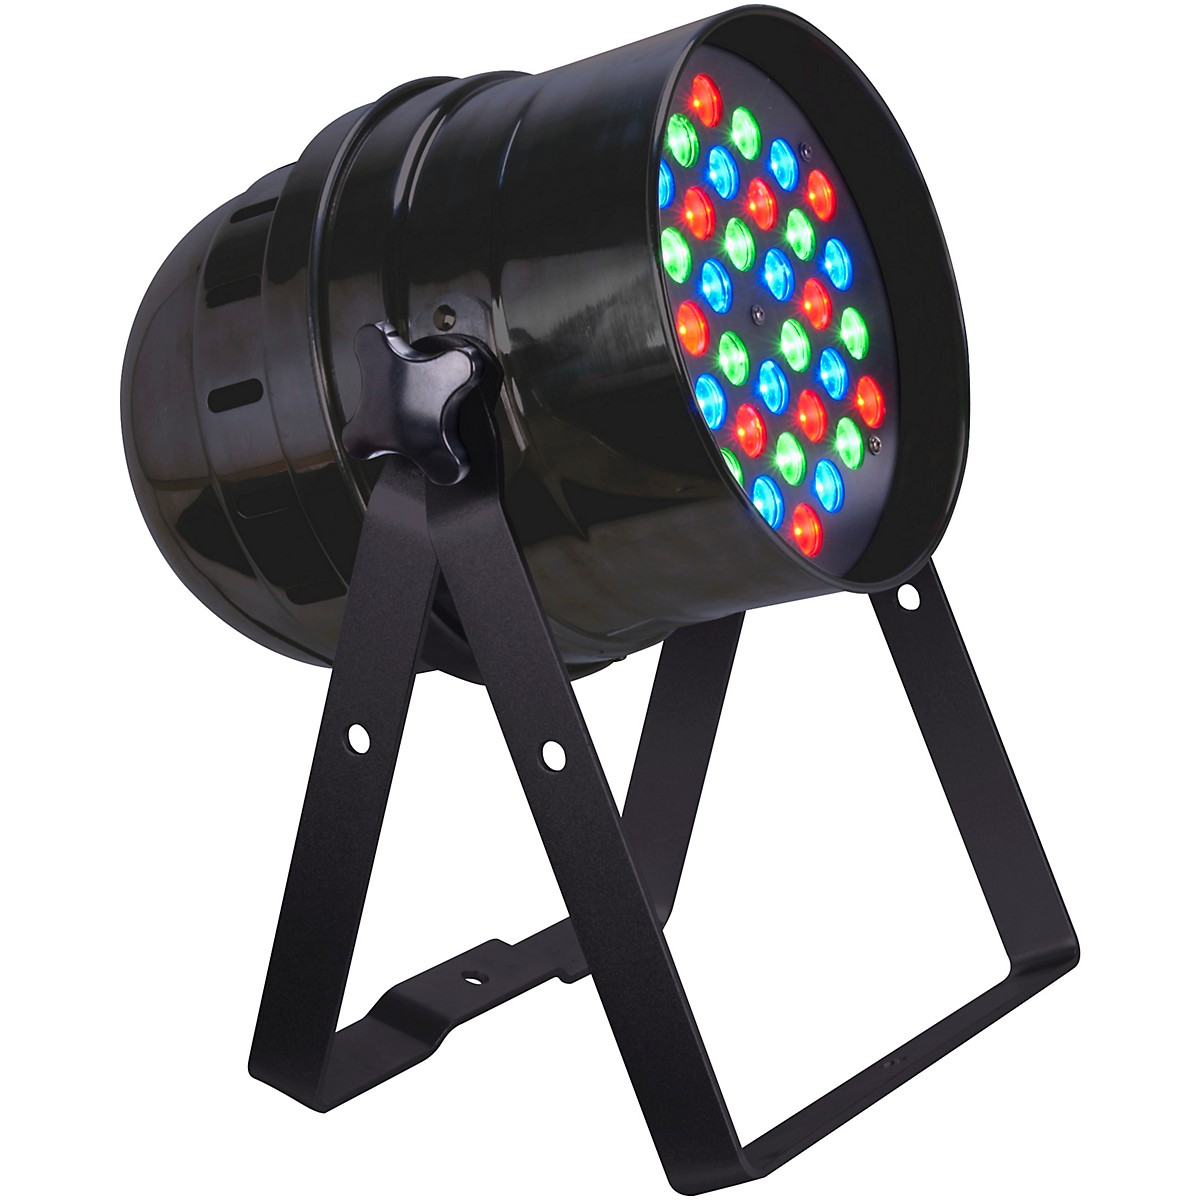 Eliminator Lighting ELECTRO 64BLED PAR RGB LED Wash Light